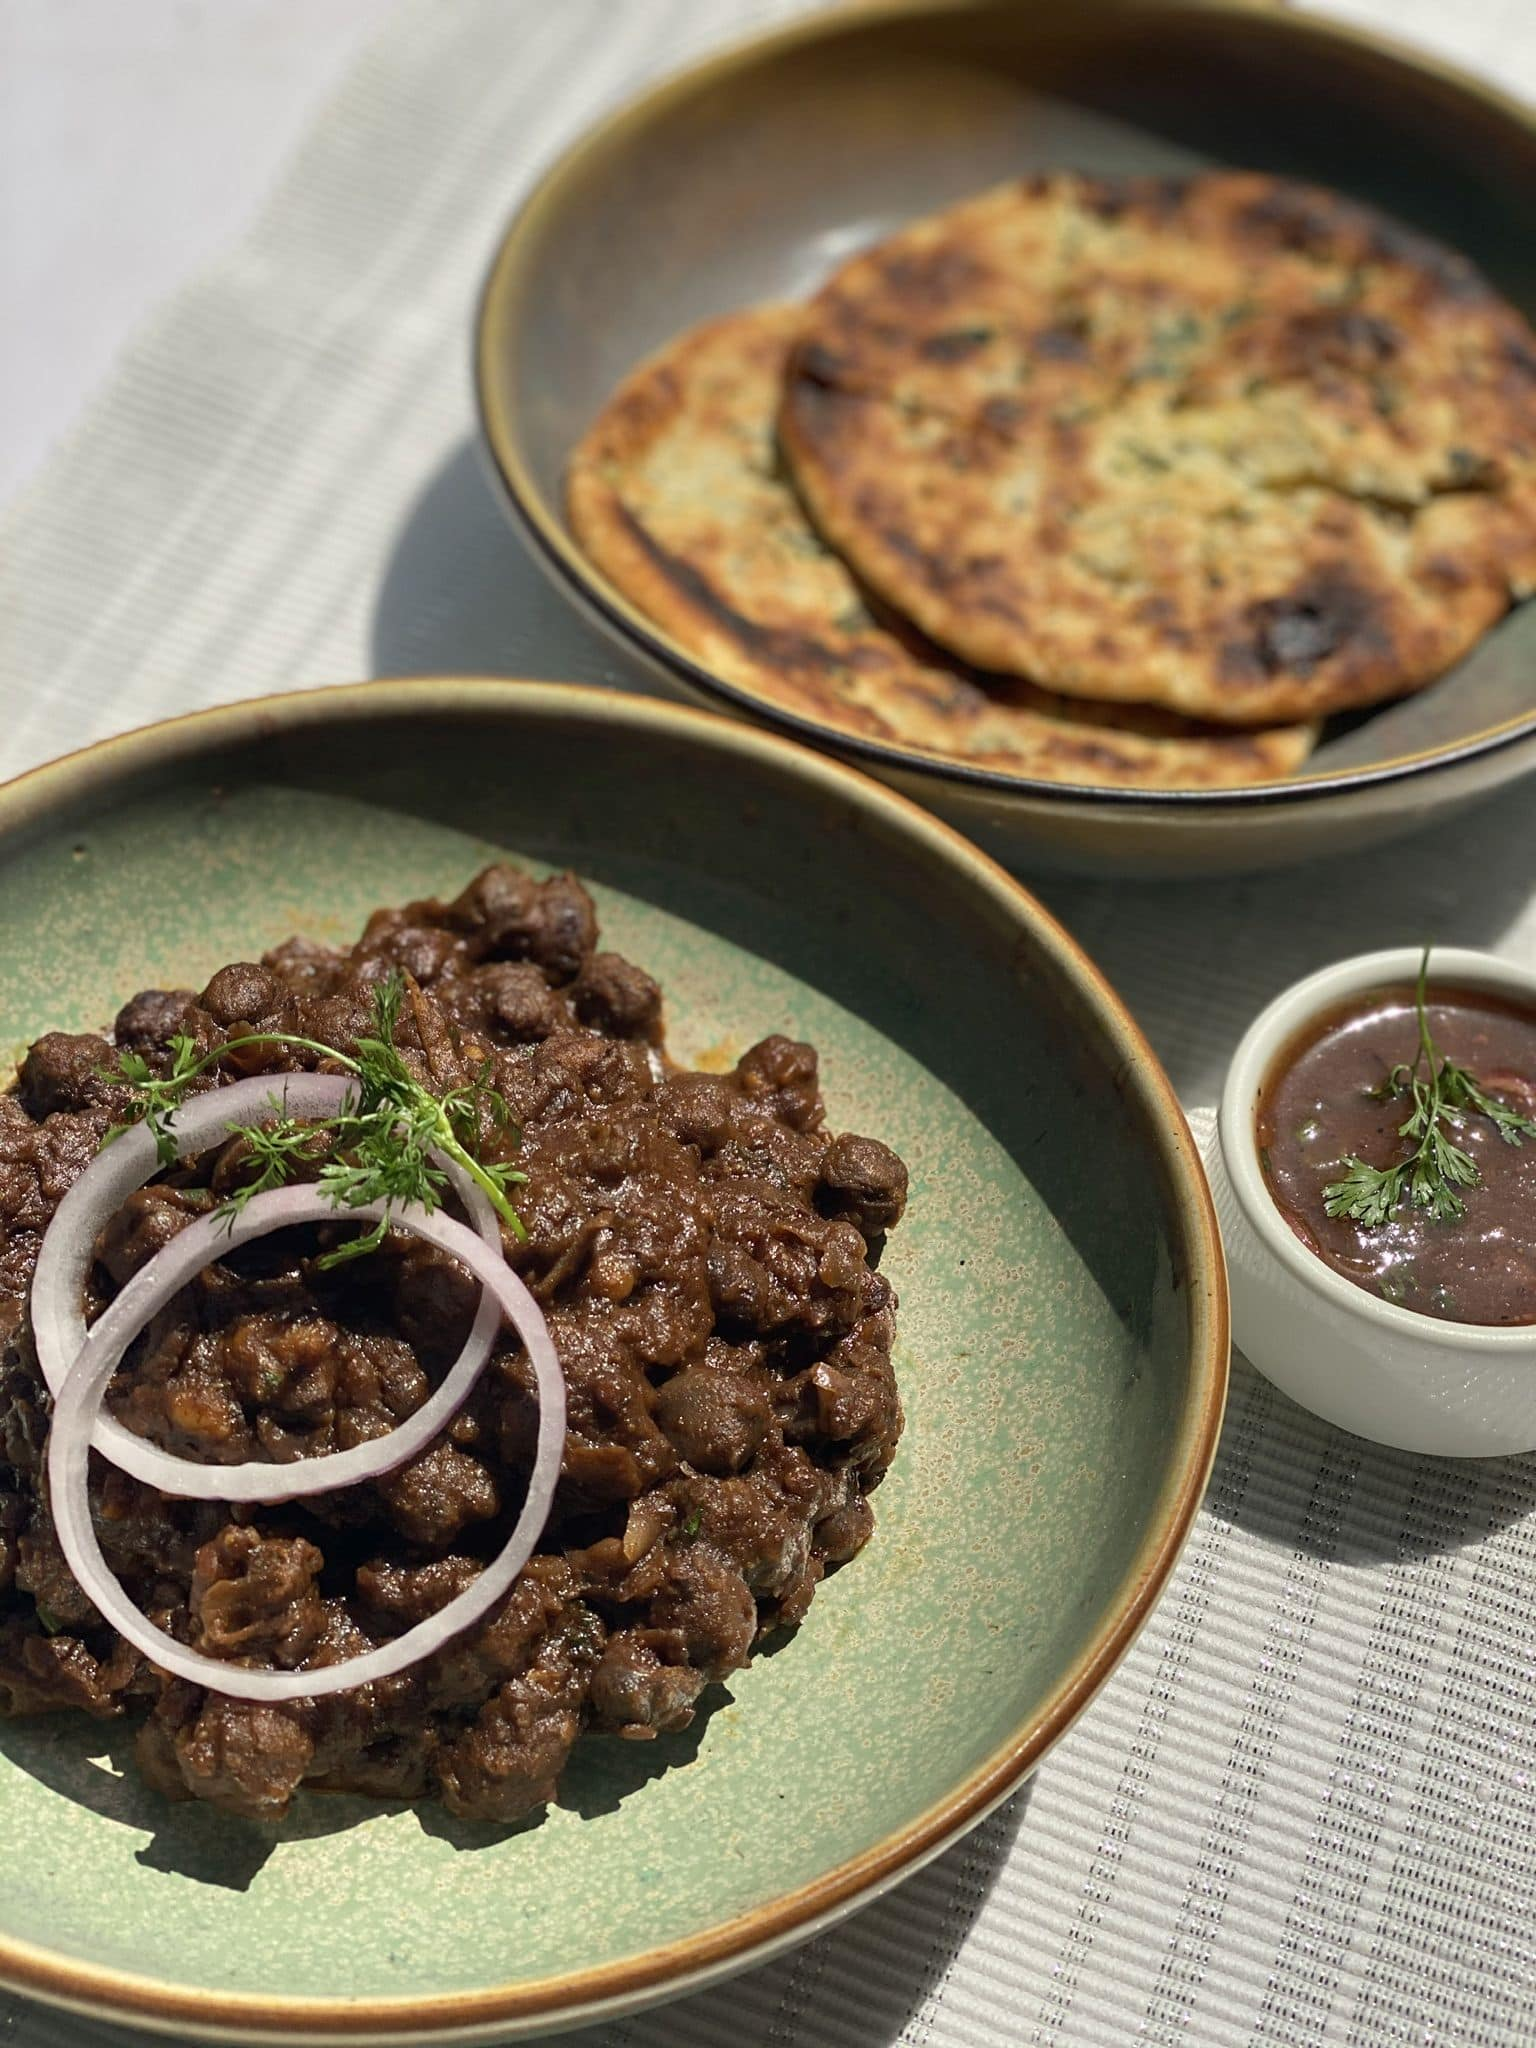 Chholey and Amritsari Kulcha.